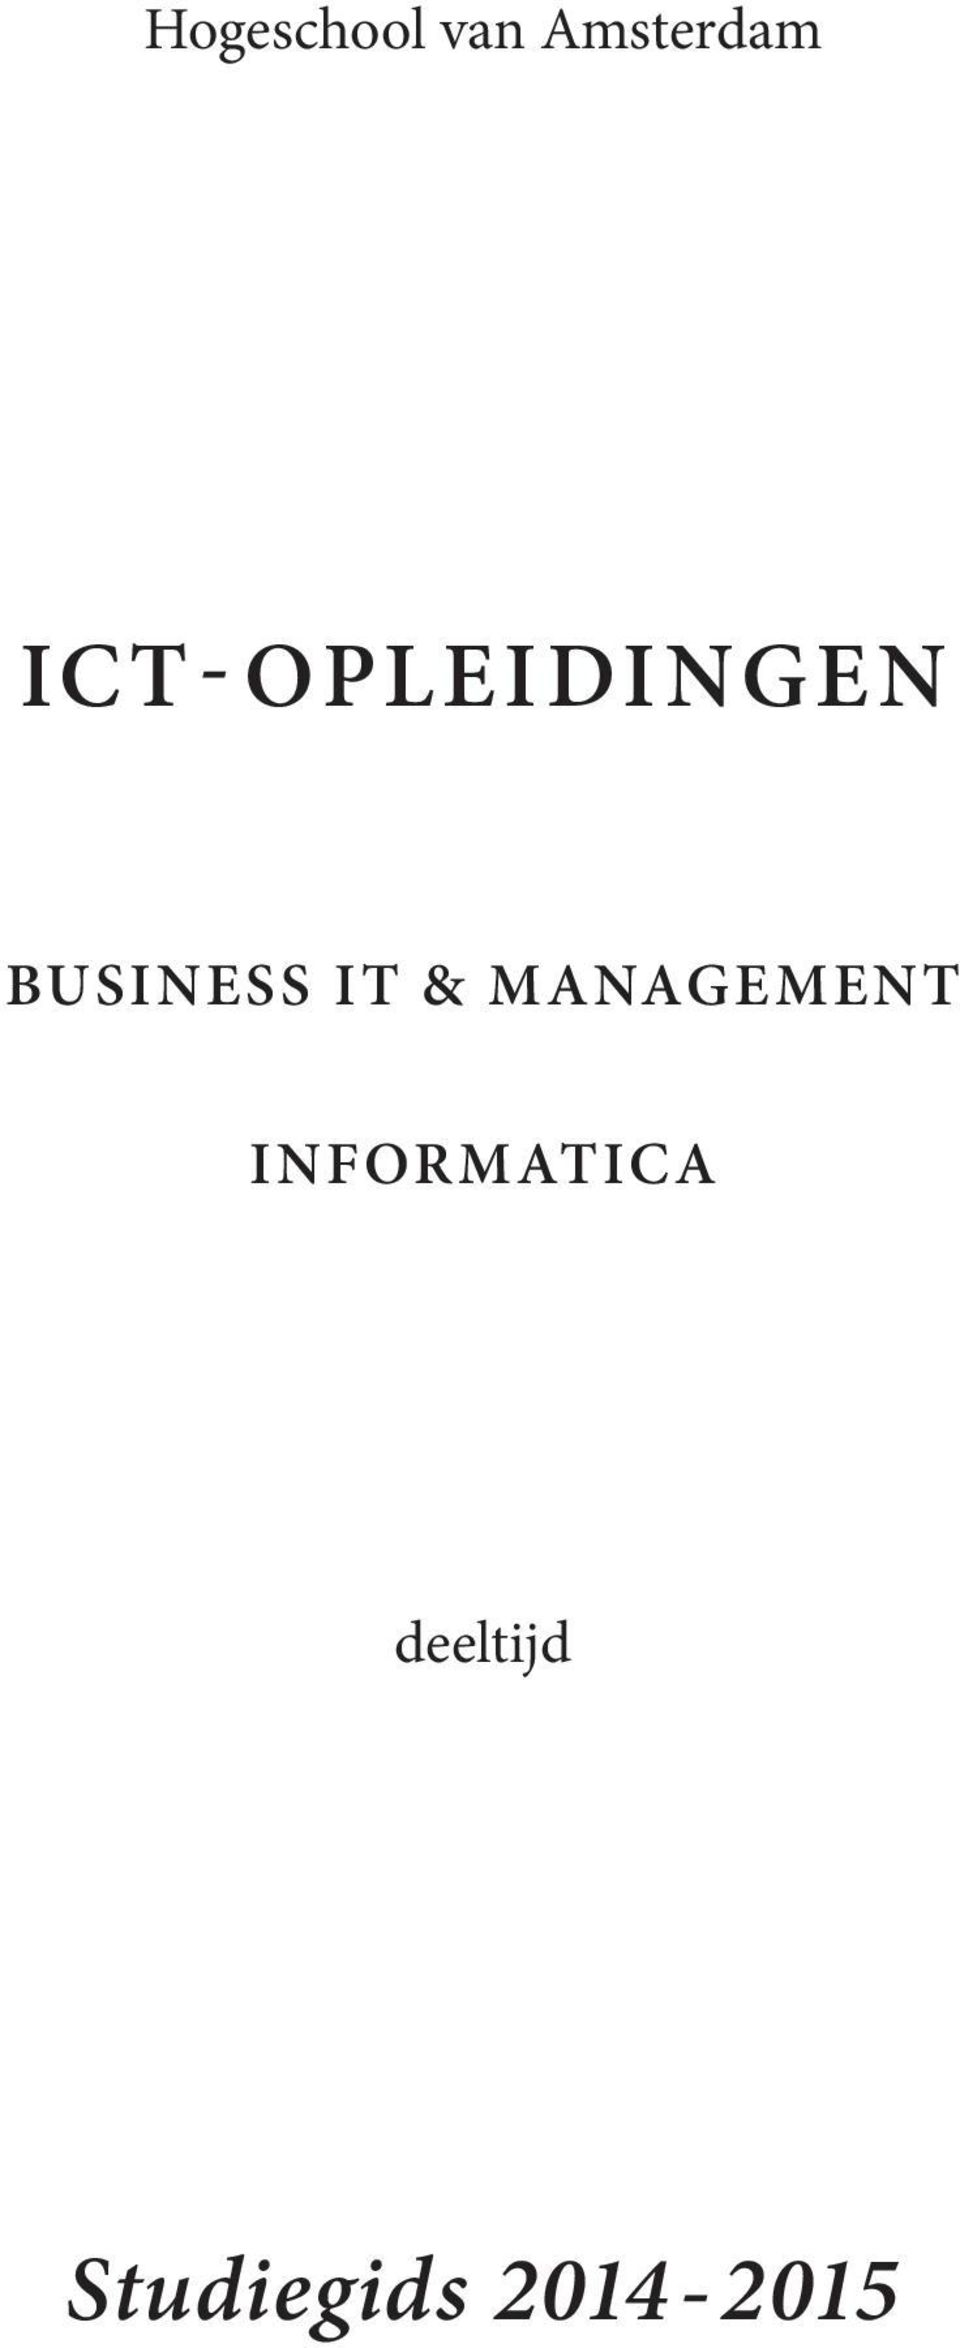 IT & MANAGEMENT